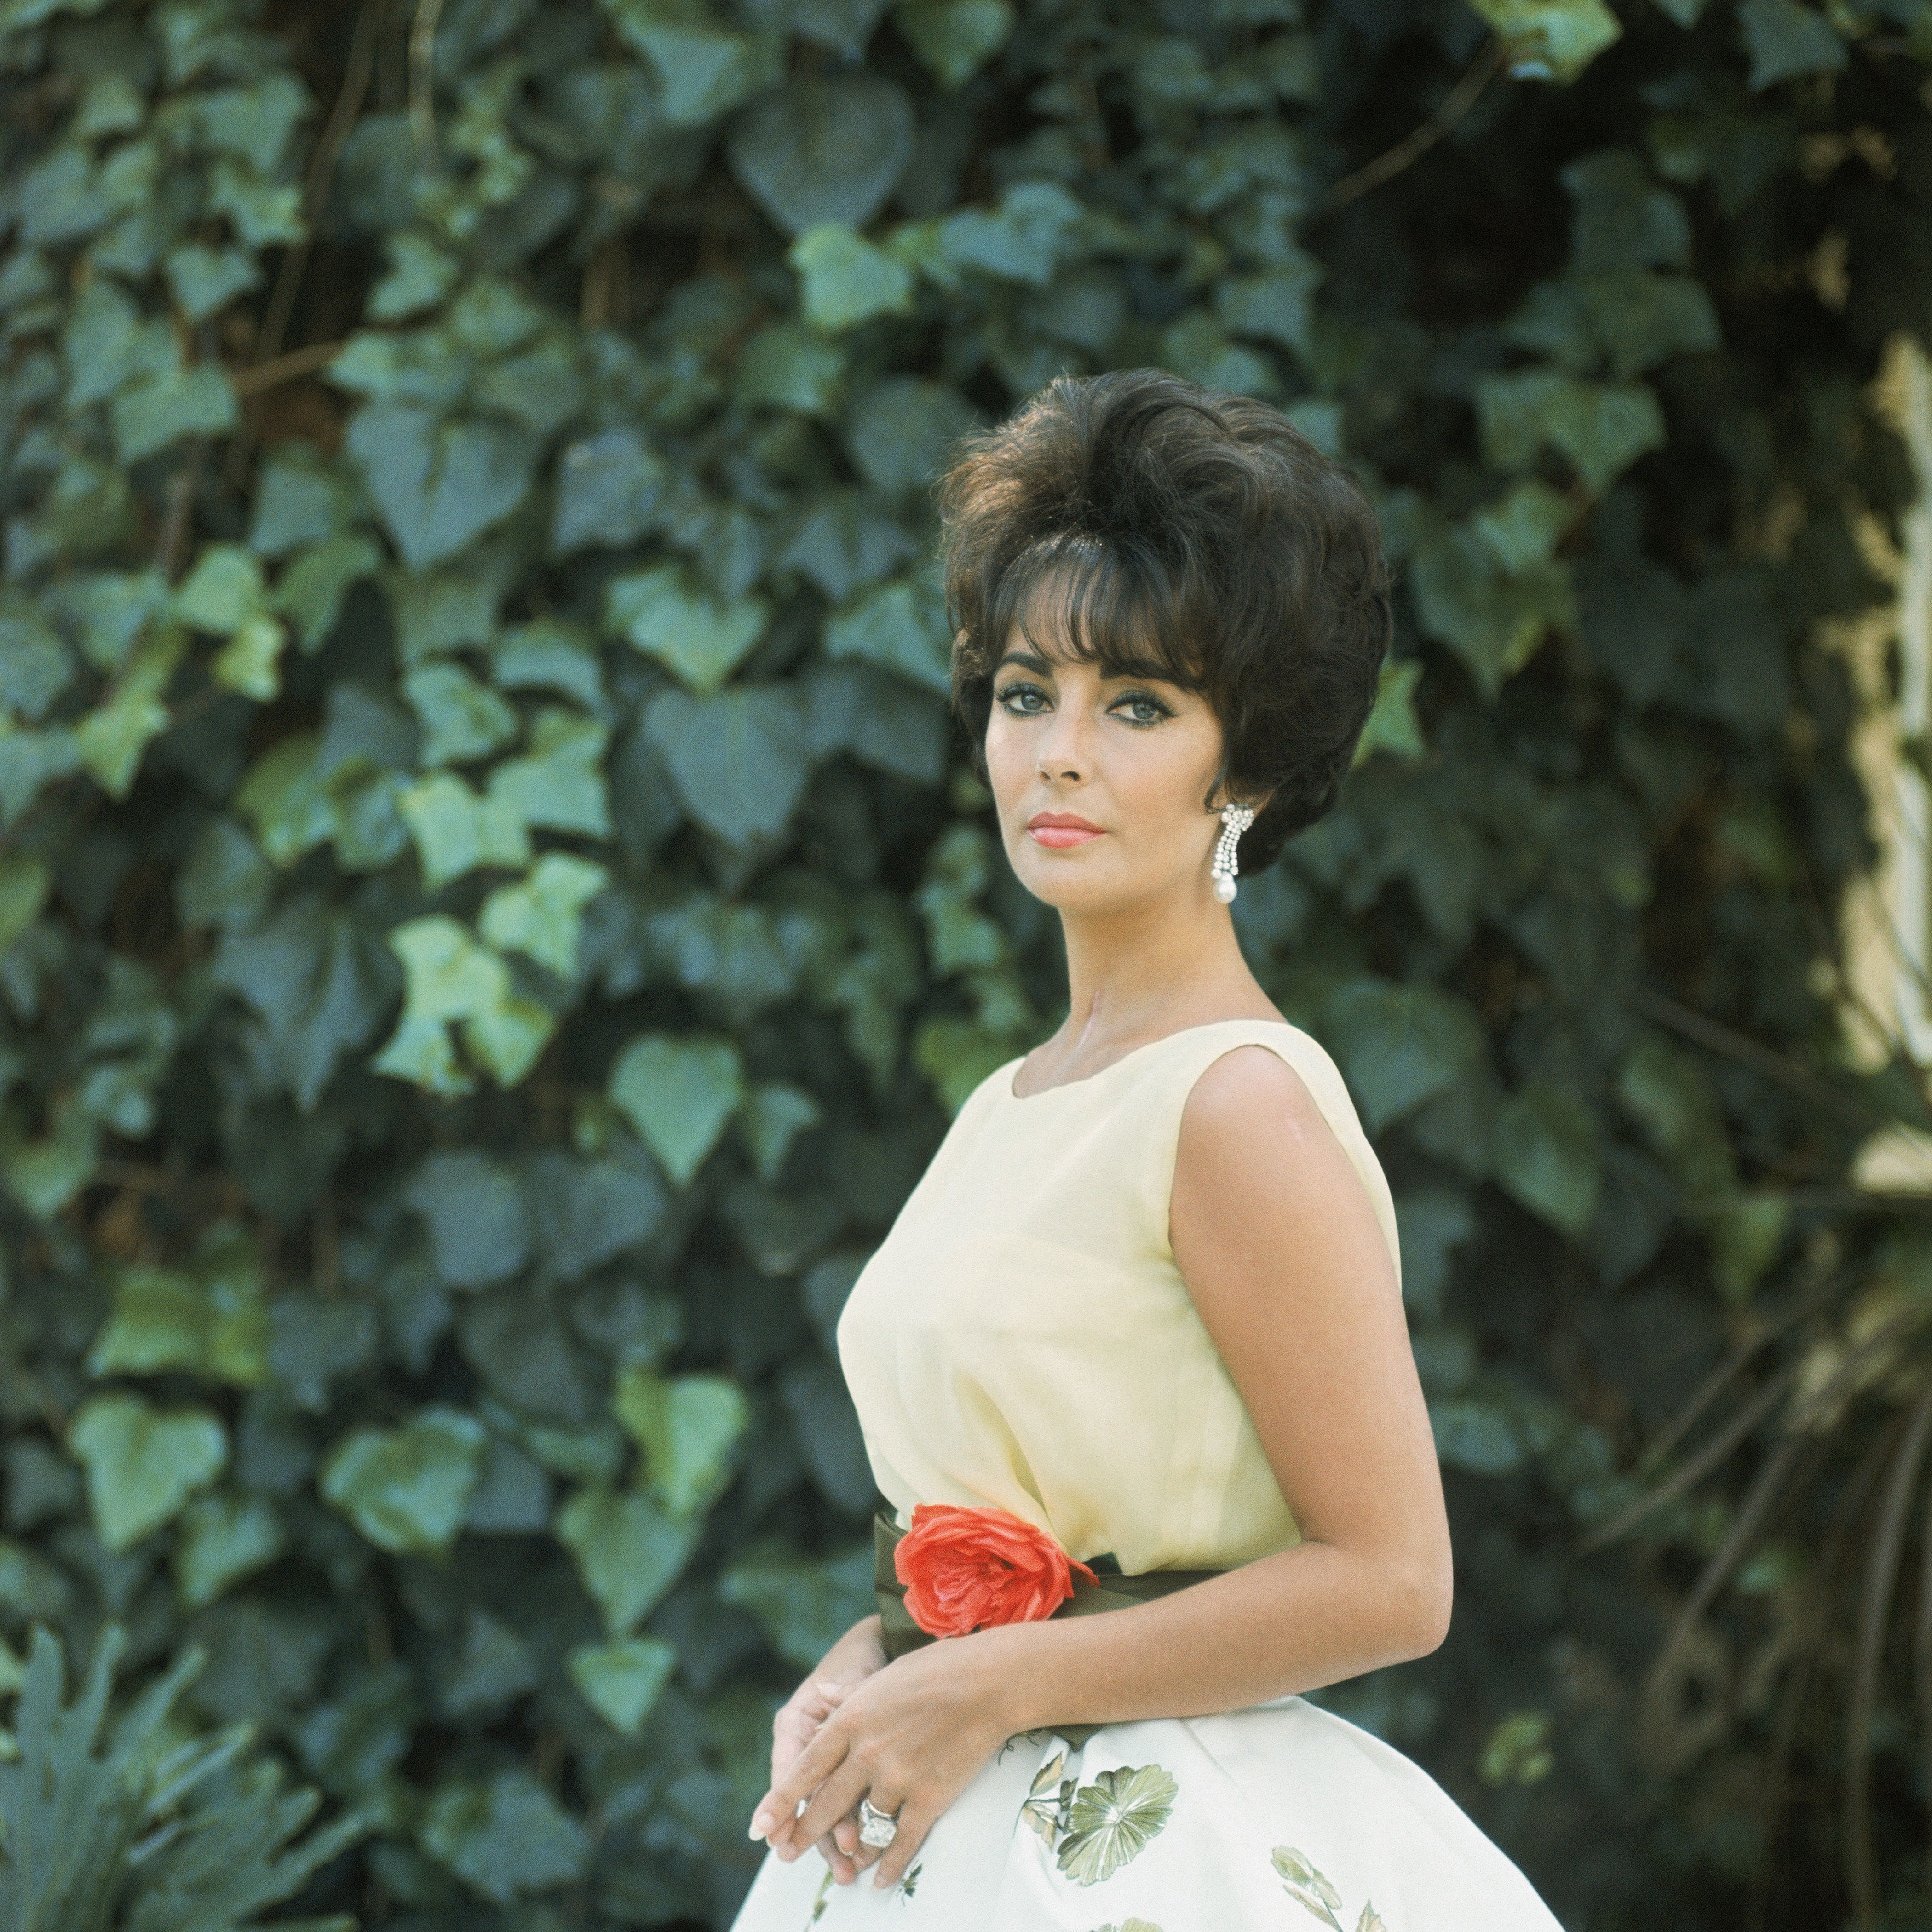 Mark Shaw, Elizabeth Taylor in the Soirée à Rio dress, Spring-Summer 1961 Haute Couture collection Slim Look © Mark Shaw / mptvi